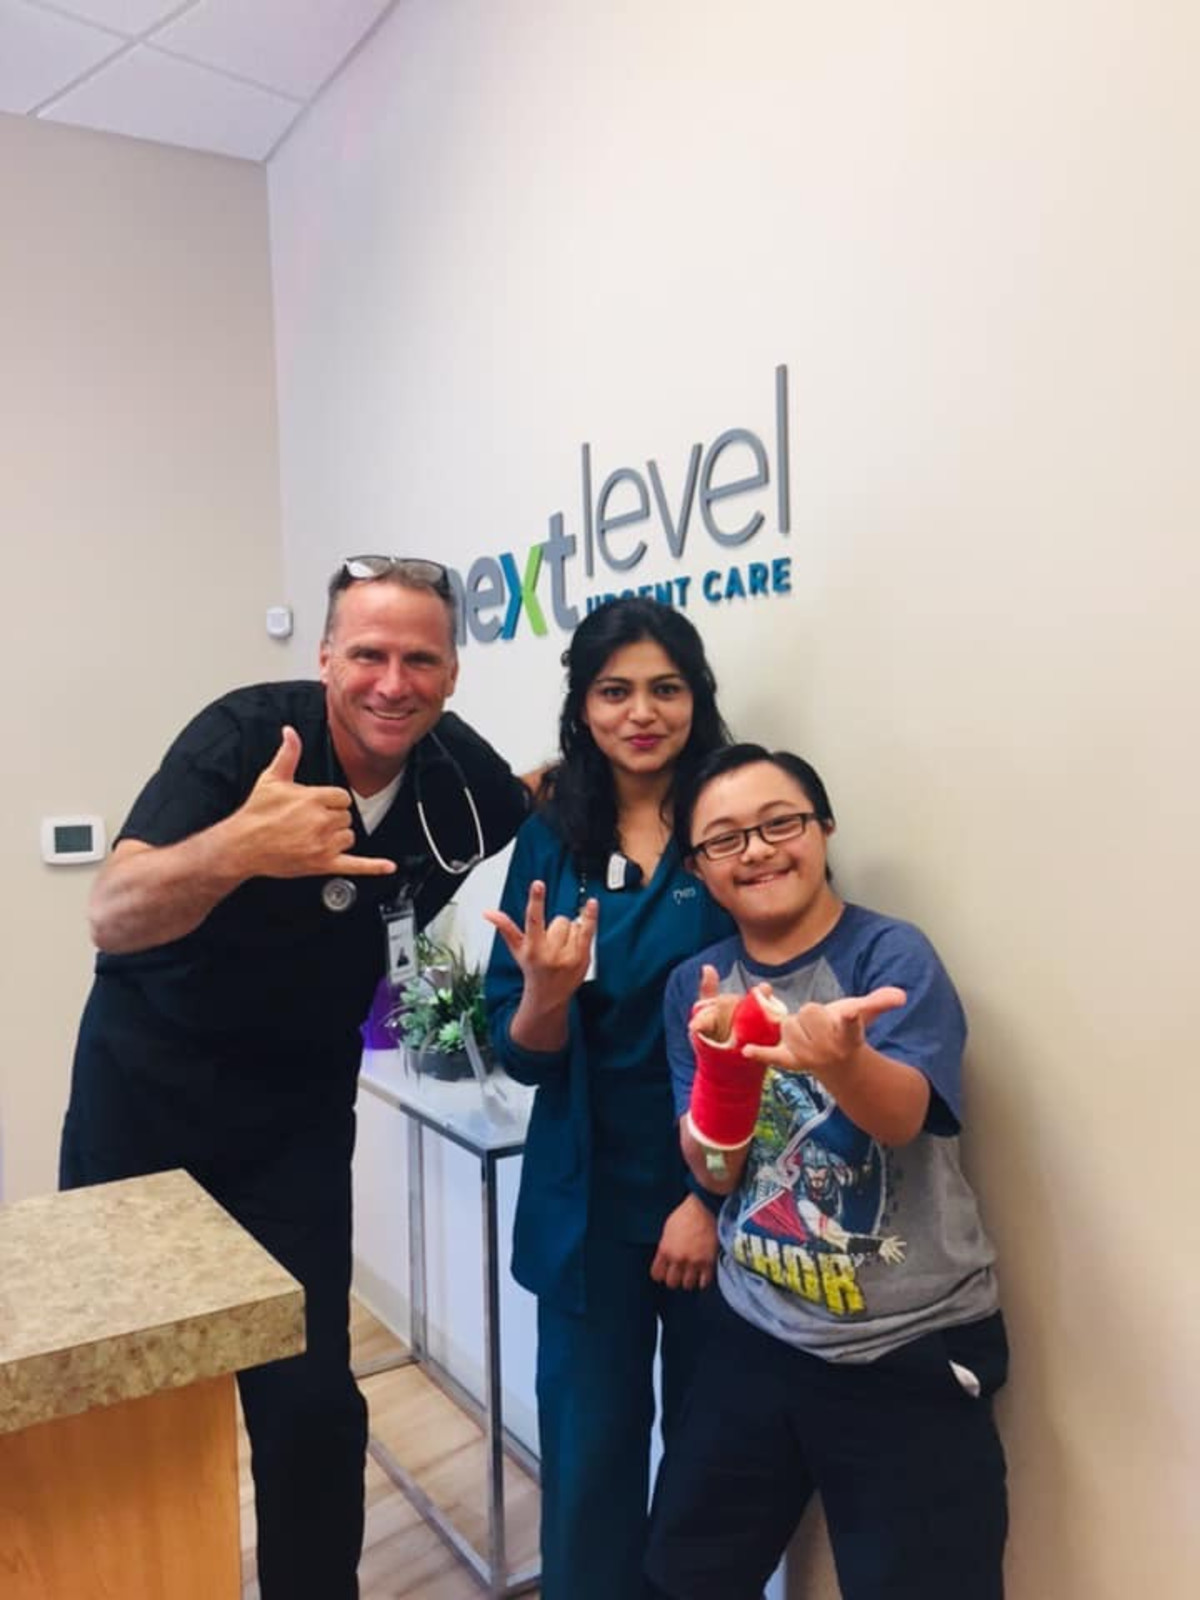 Next Level Urgent Care employees and patient